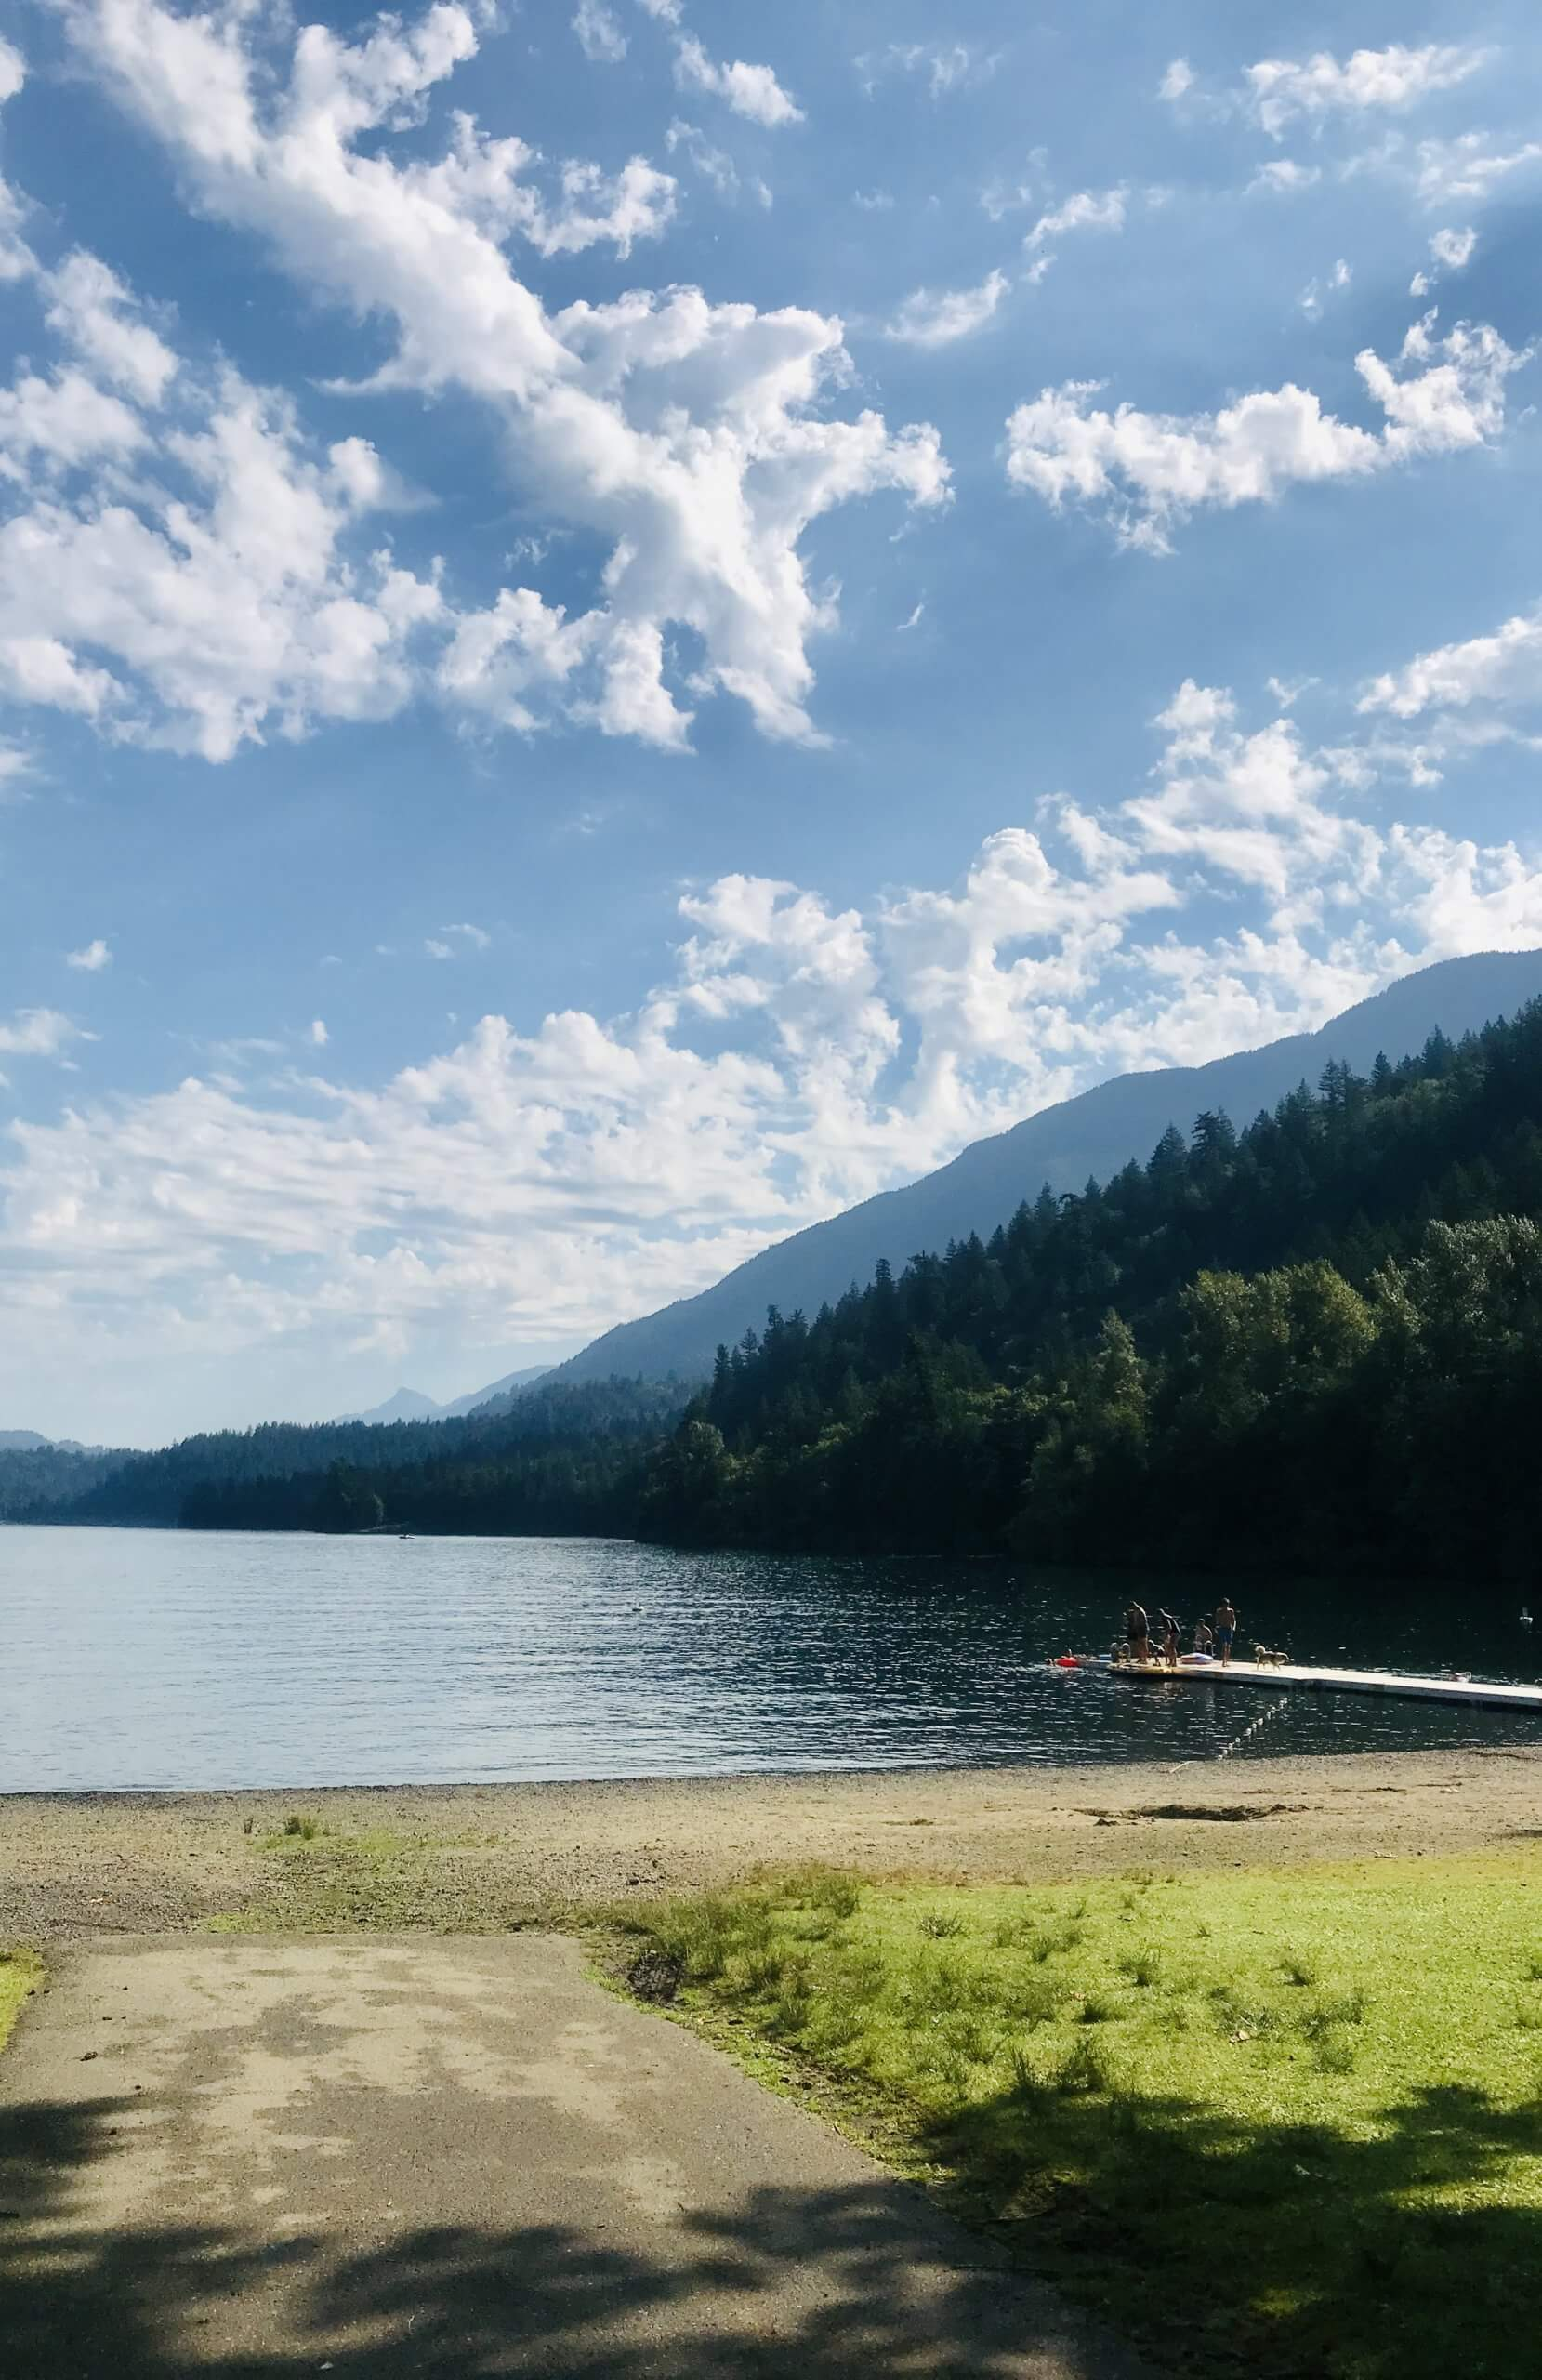 View of the lake and mountains at Cultus Lake in Chilliwack